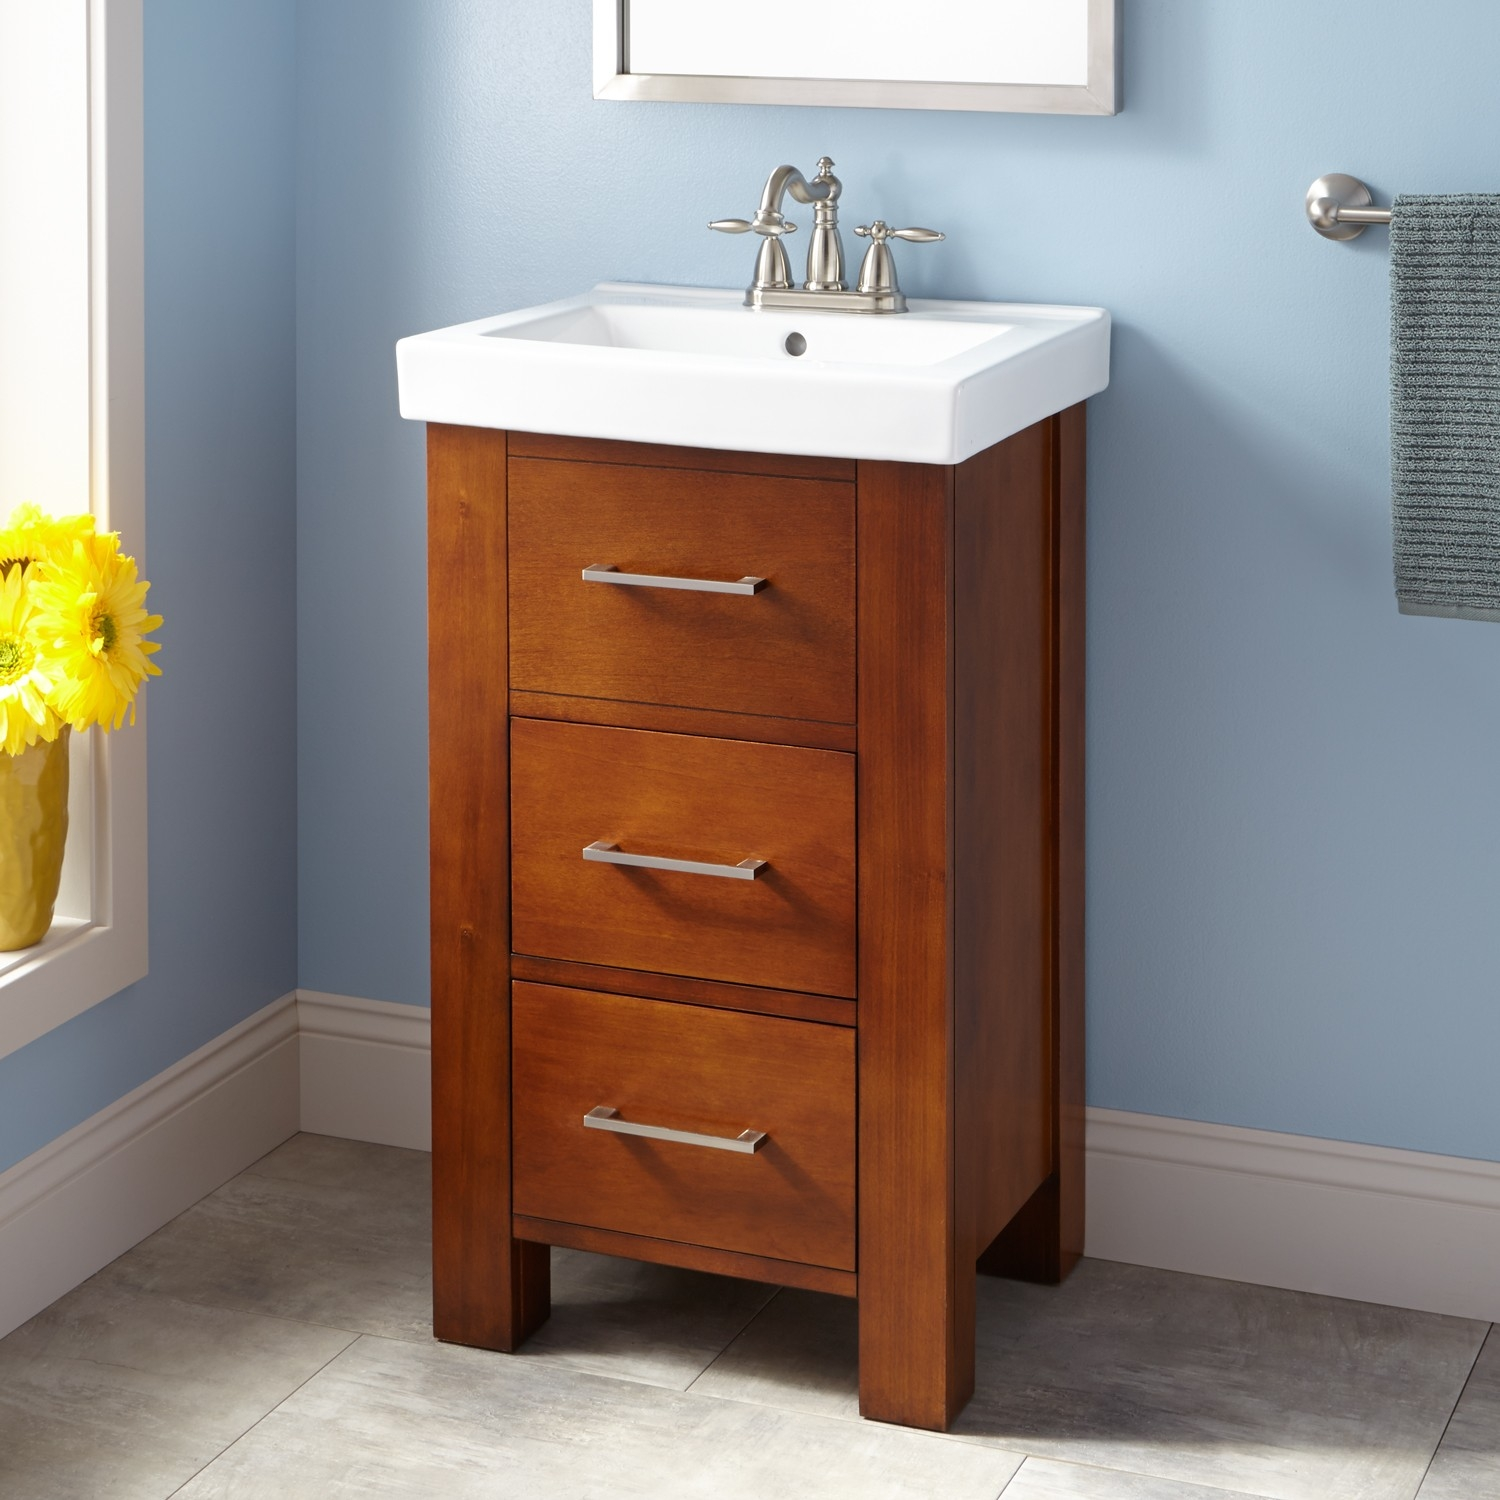 20 Inch Bathroom Vanity Ikea Bathroom Cabinets Ideas